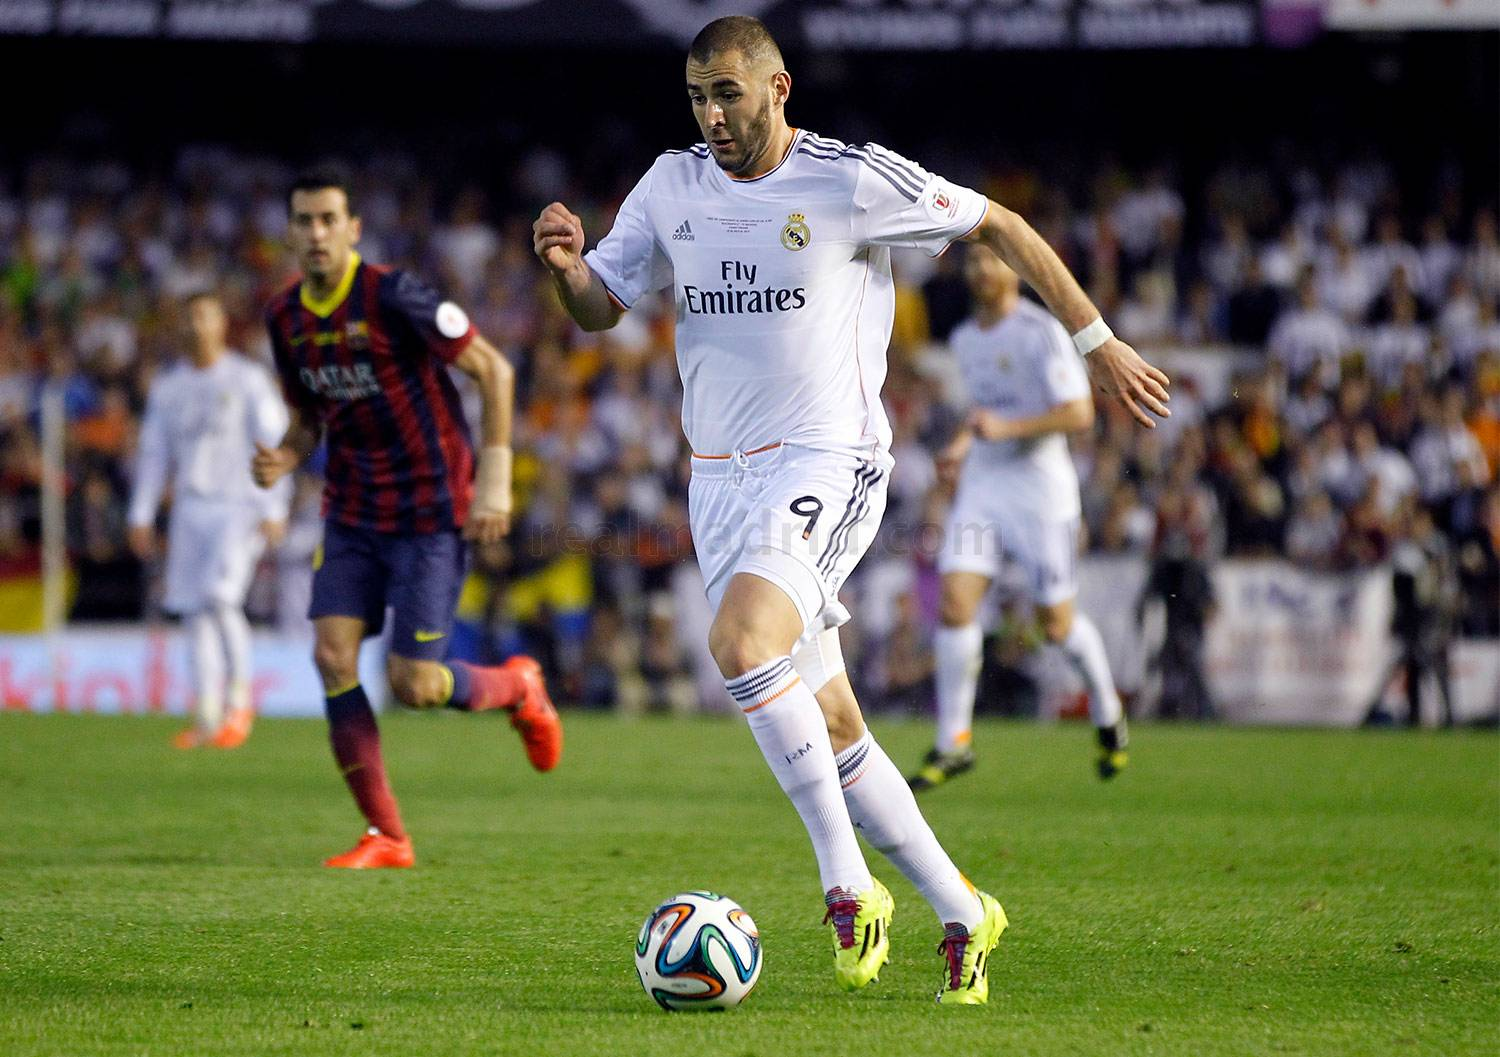 Real Madrid - Benzema en el Real Madrid - 02-07-2020